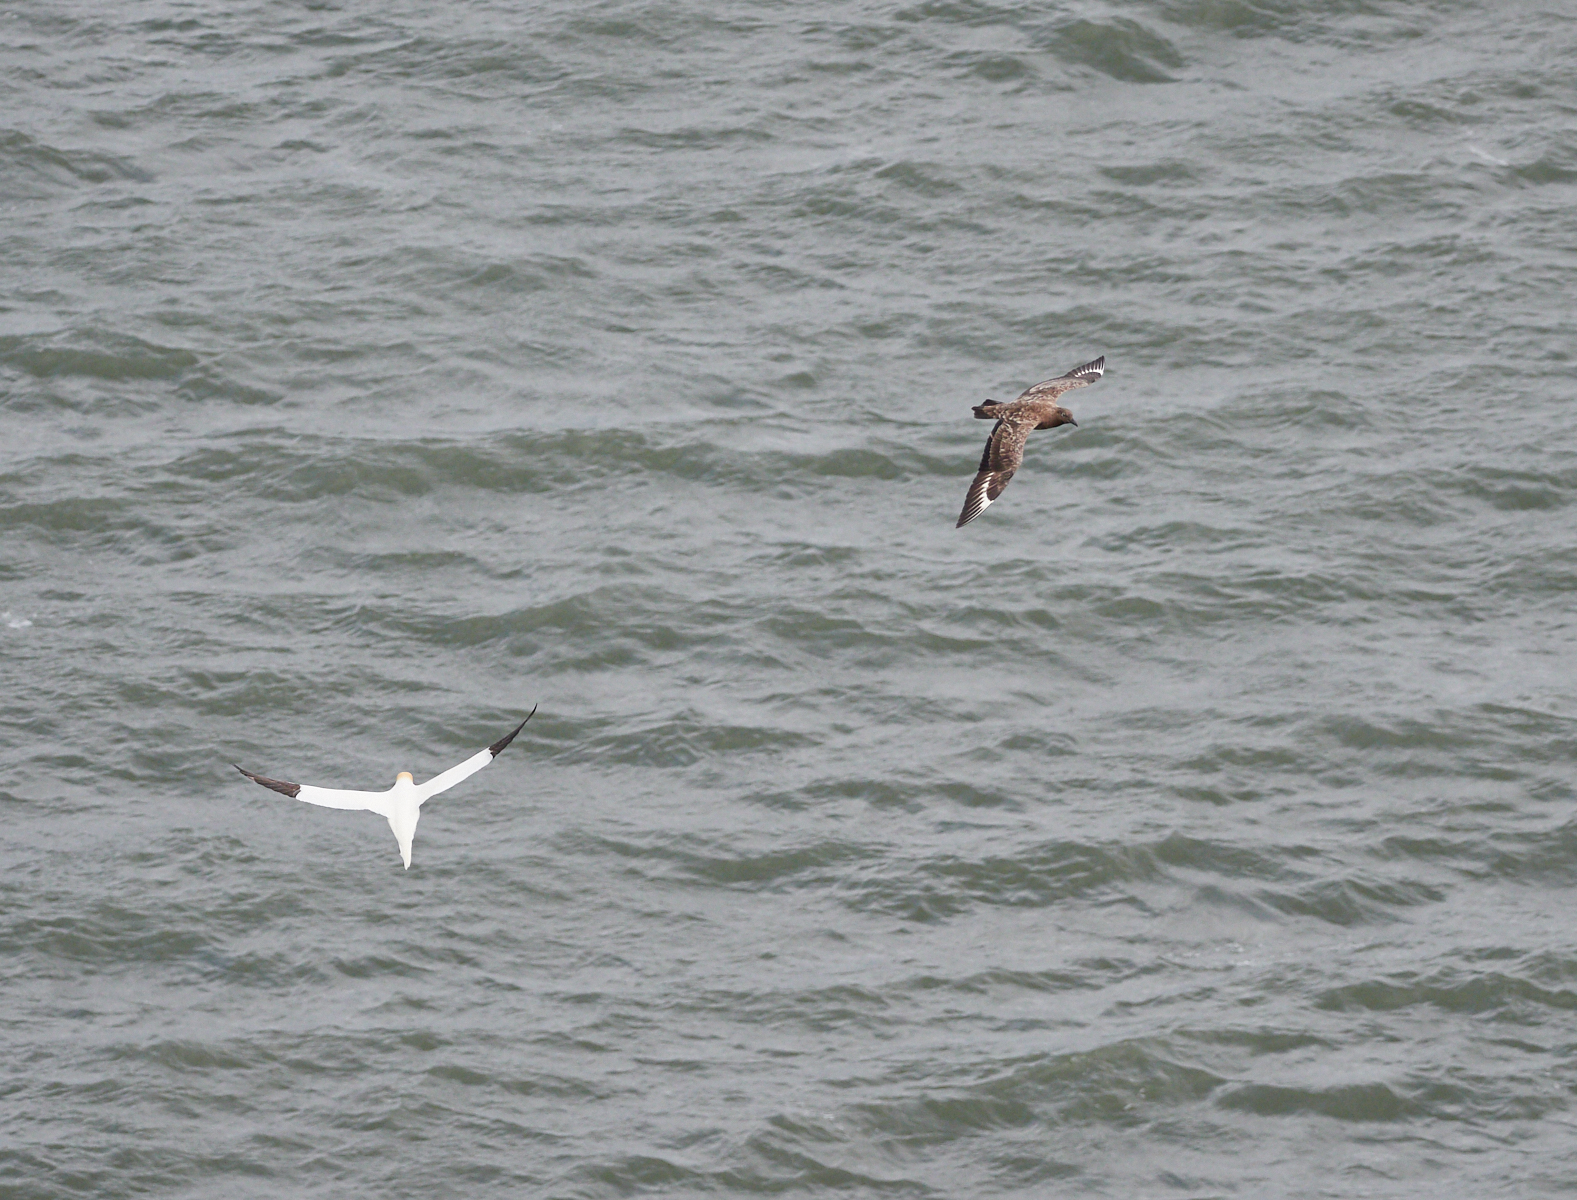 Giant skua with gannet1600x1200 sRGB.jpg